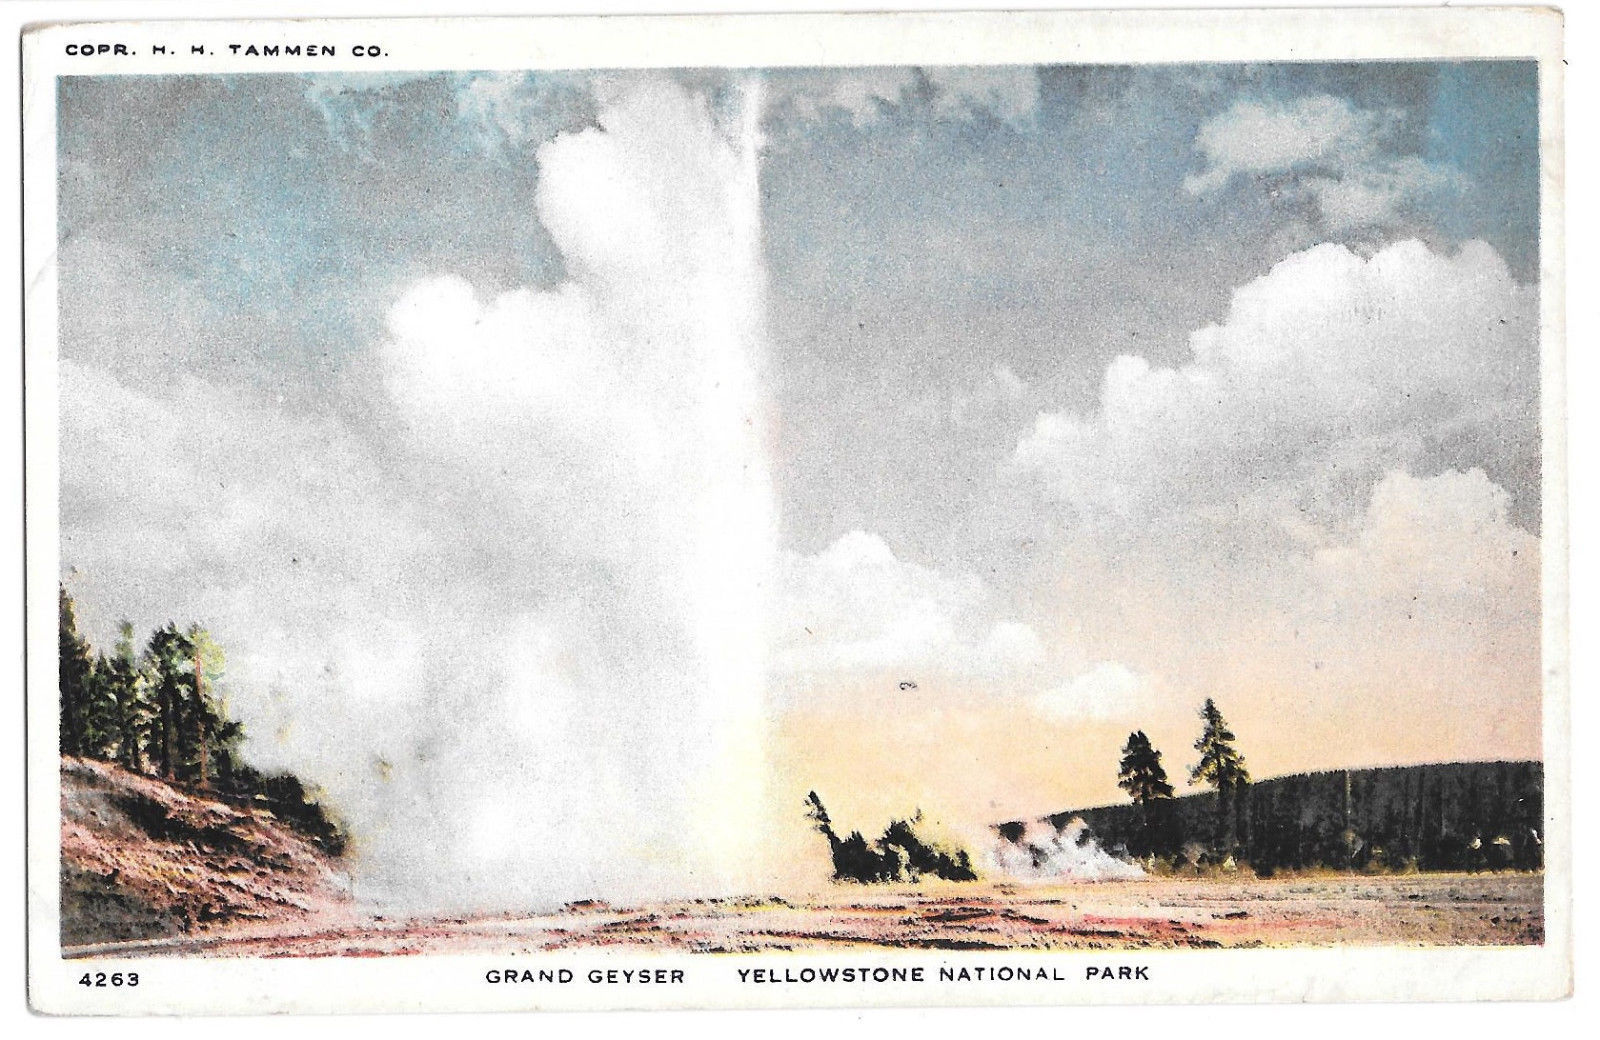 WY Yellowstone National Park Grand Geyser Vtg H H Tammen Postcard Wyoming